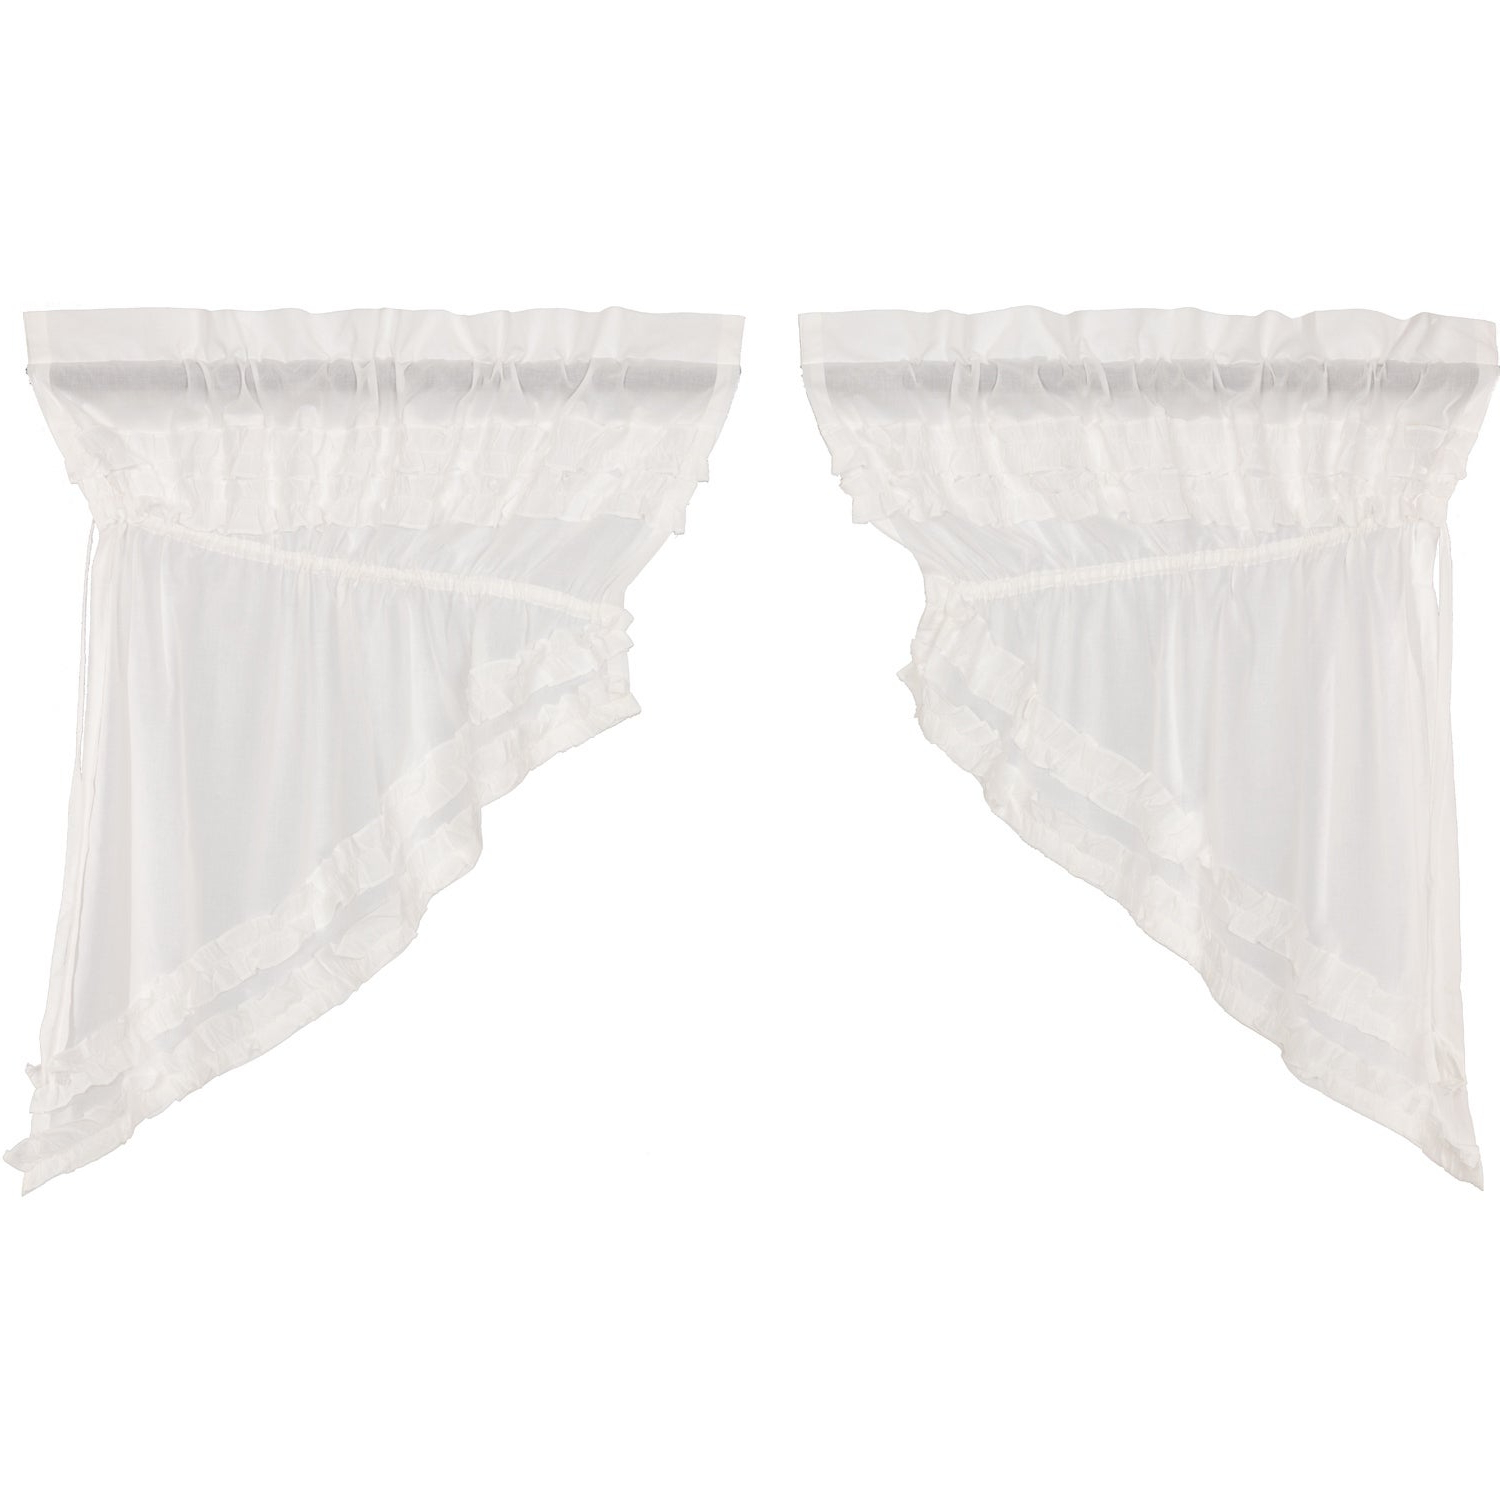 White Farmhouse Kitchen Curtains Vhc White Ruffled Sheer Petticoat Prairie Swag Pair Rod Pocket Cotton Solid Color Sheer Intended For Most Recently Released Rod Pocket Cotton Solid Color Ruched Ruffle Kitchen Curtains (View 7 of 20)